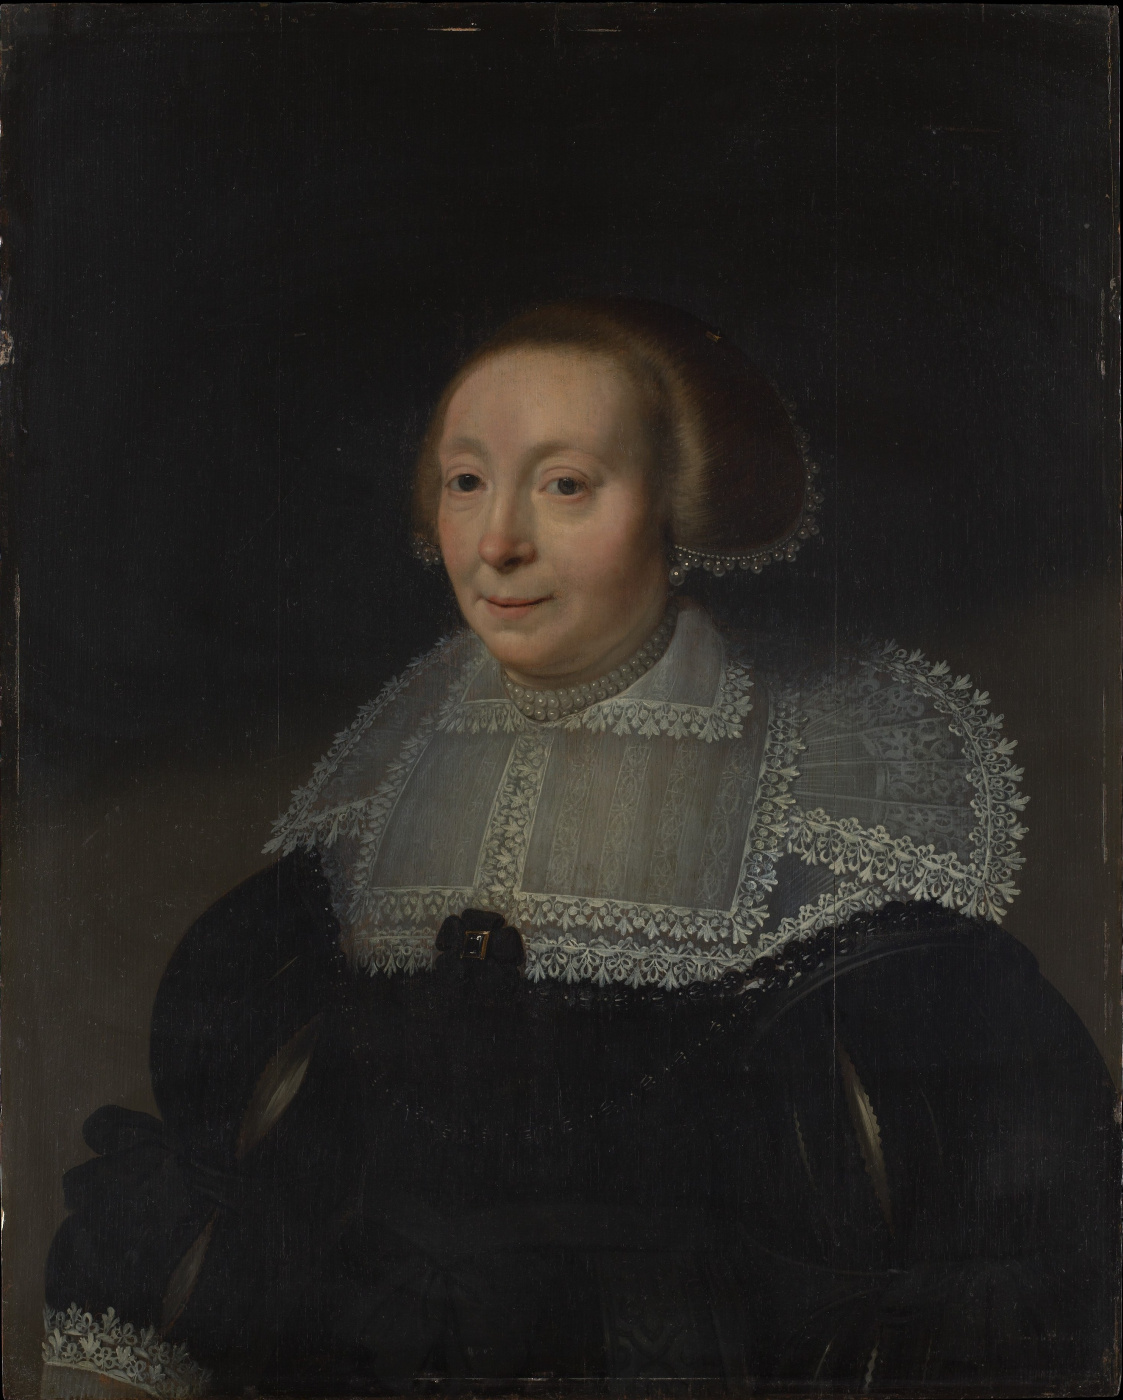 Janson Mihil van Mireveld. Portrait of a woman in a dress with a lace collar